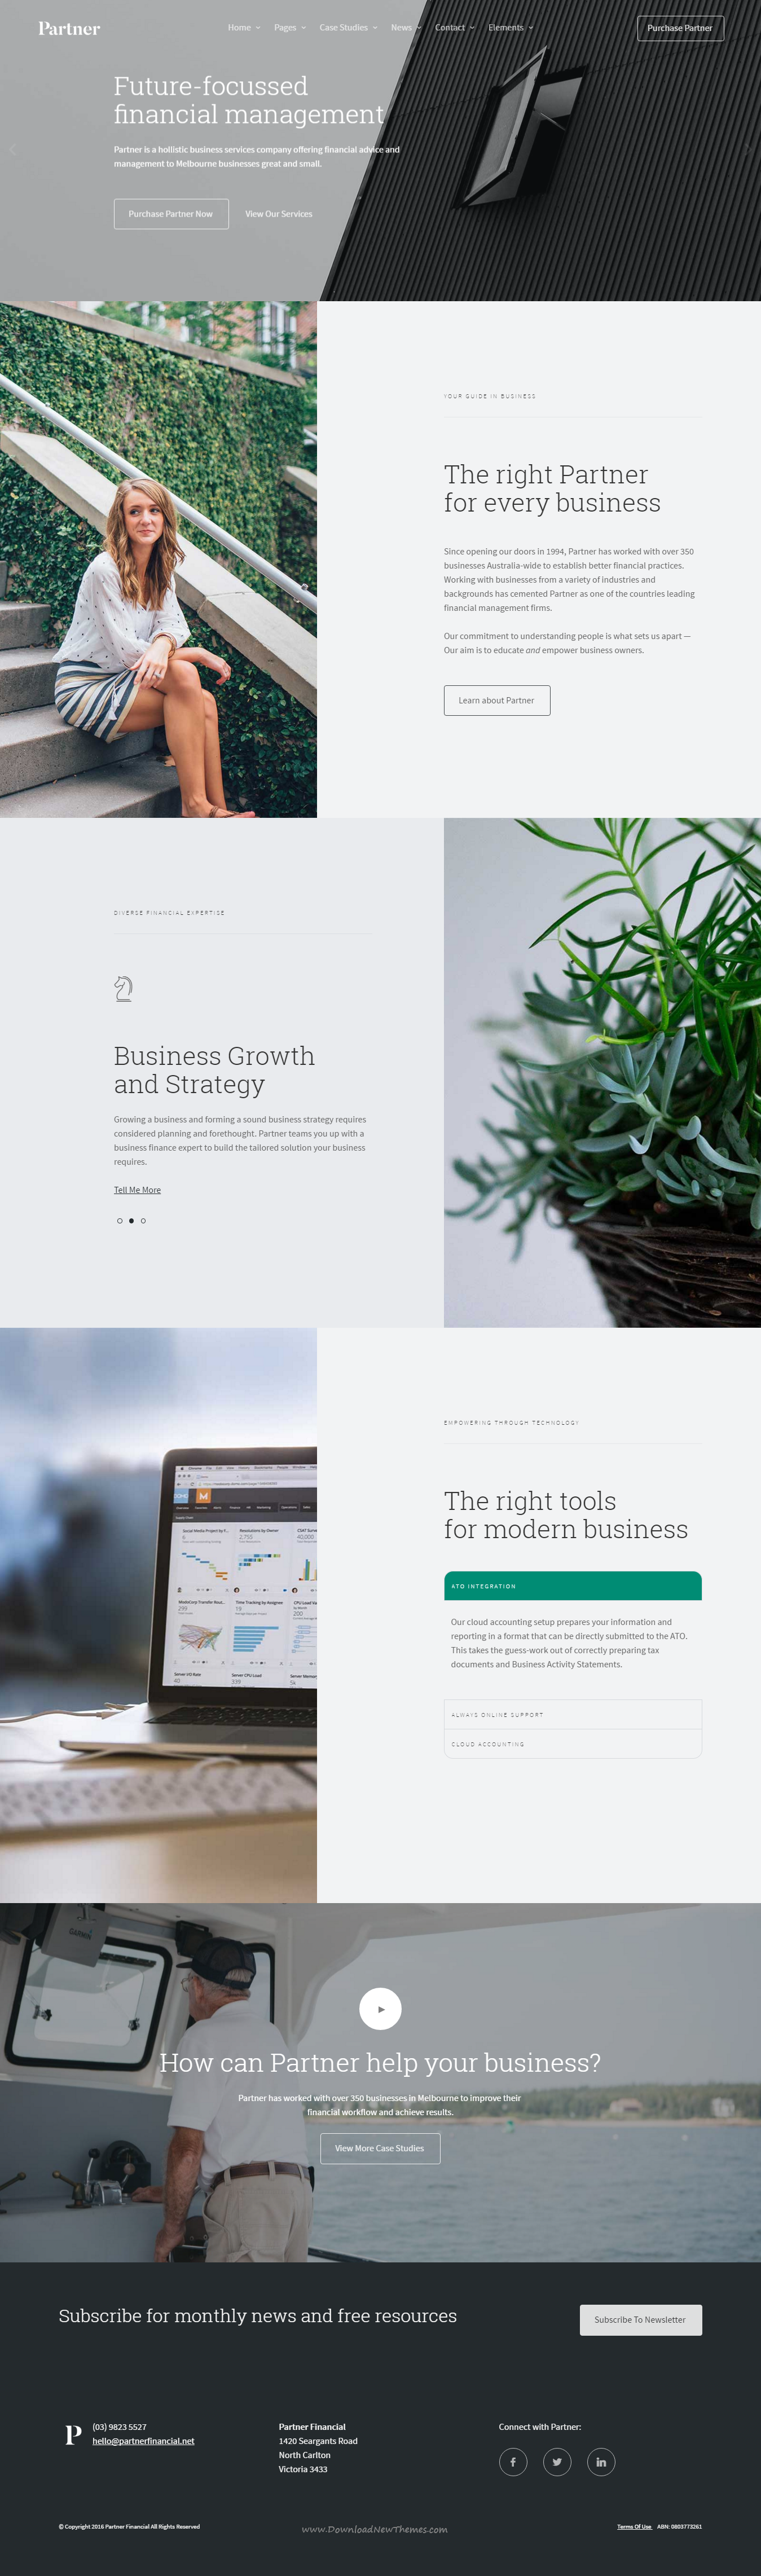 Professional accounting financial and law firm website template professional accounting financial and law firm website template with variant page builder download maxwellsz